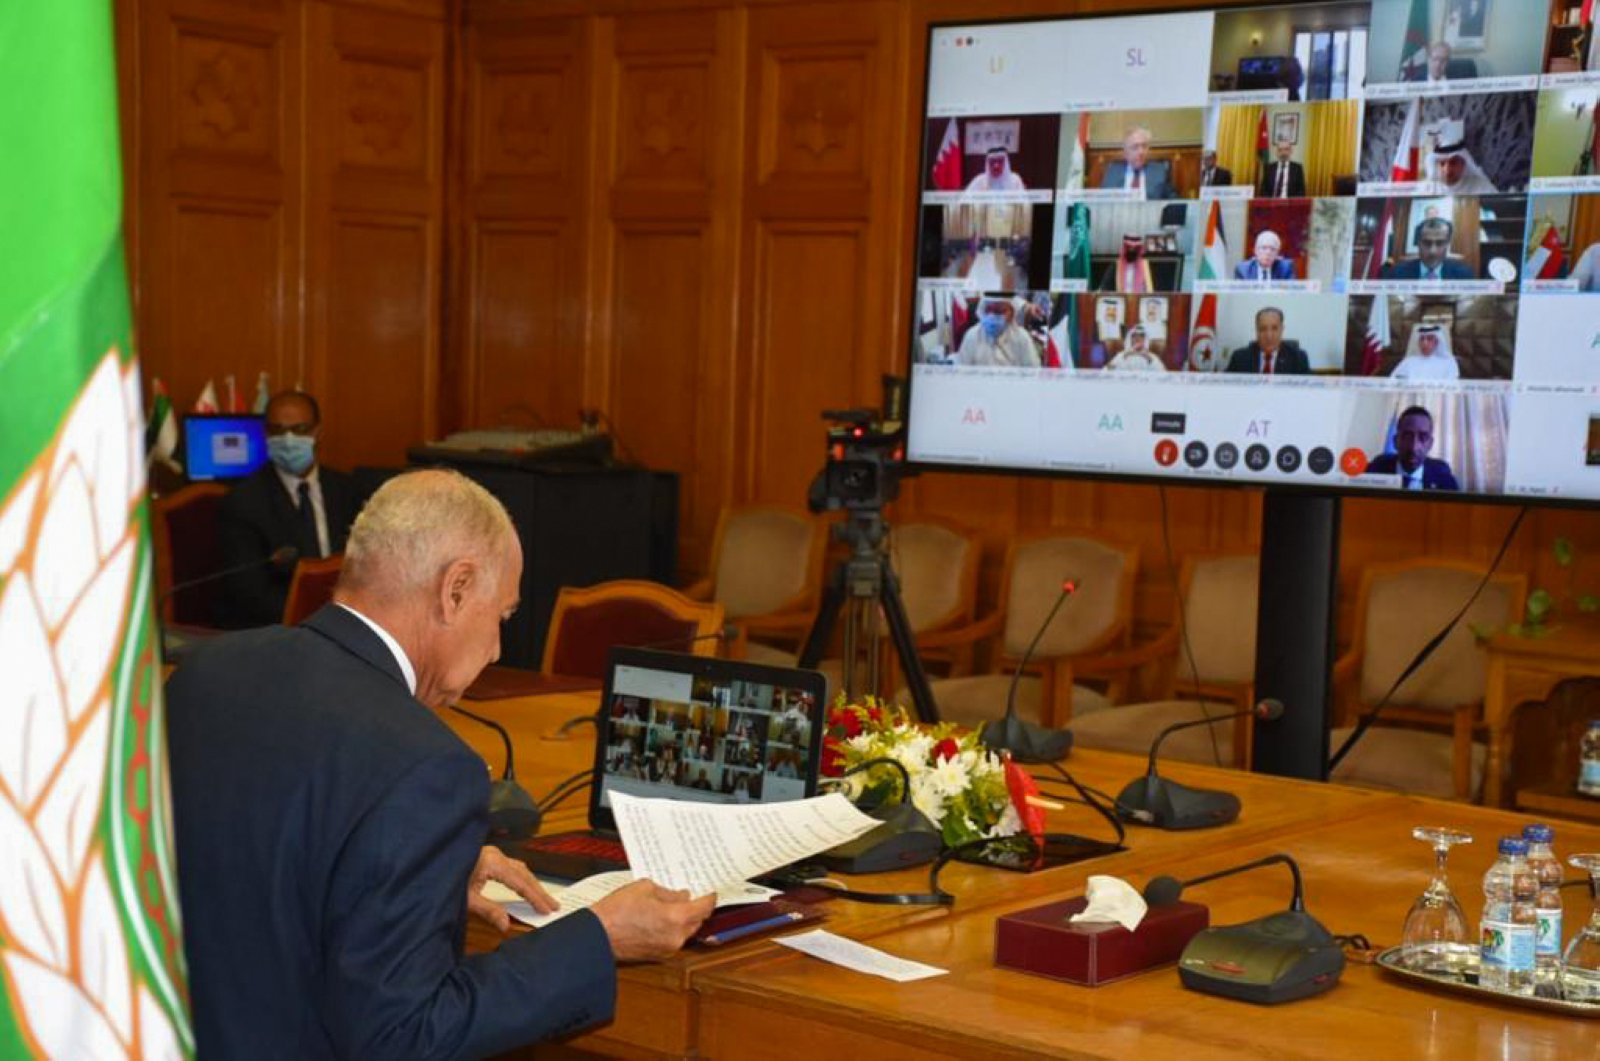 Arab League Secretary-General Ahmed Aboul Gheit chairs a virtual foreign minister meeting on Libya at Egypt's request in the Egyptian capital Cairo, June 23, 2020. (AFP Photo)